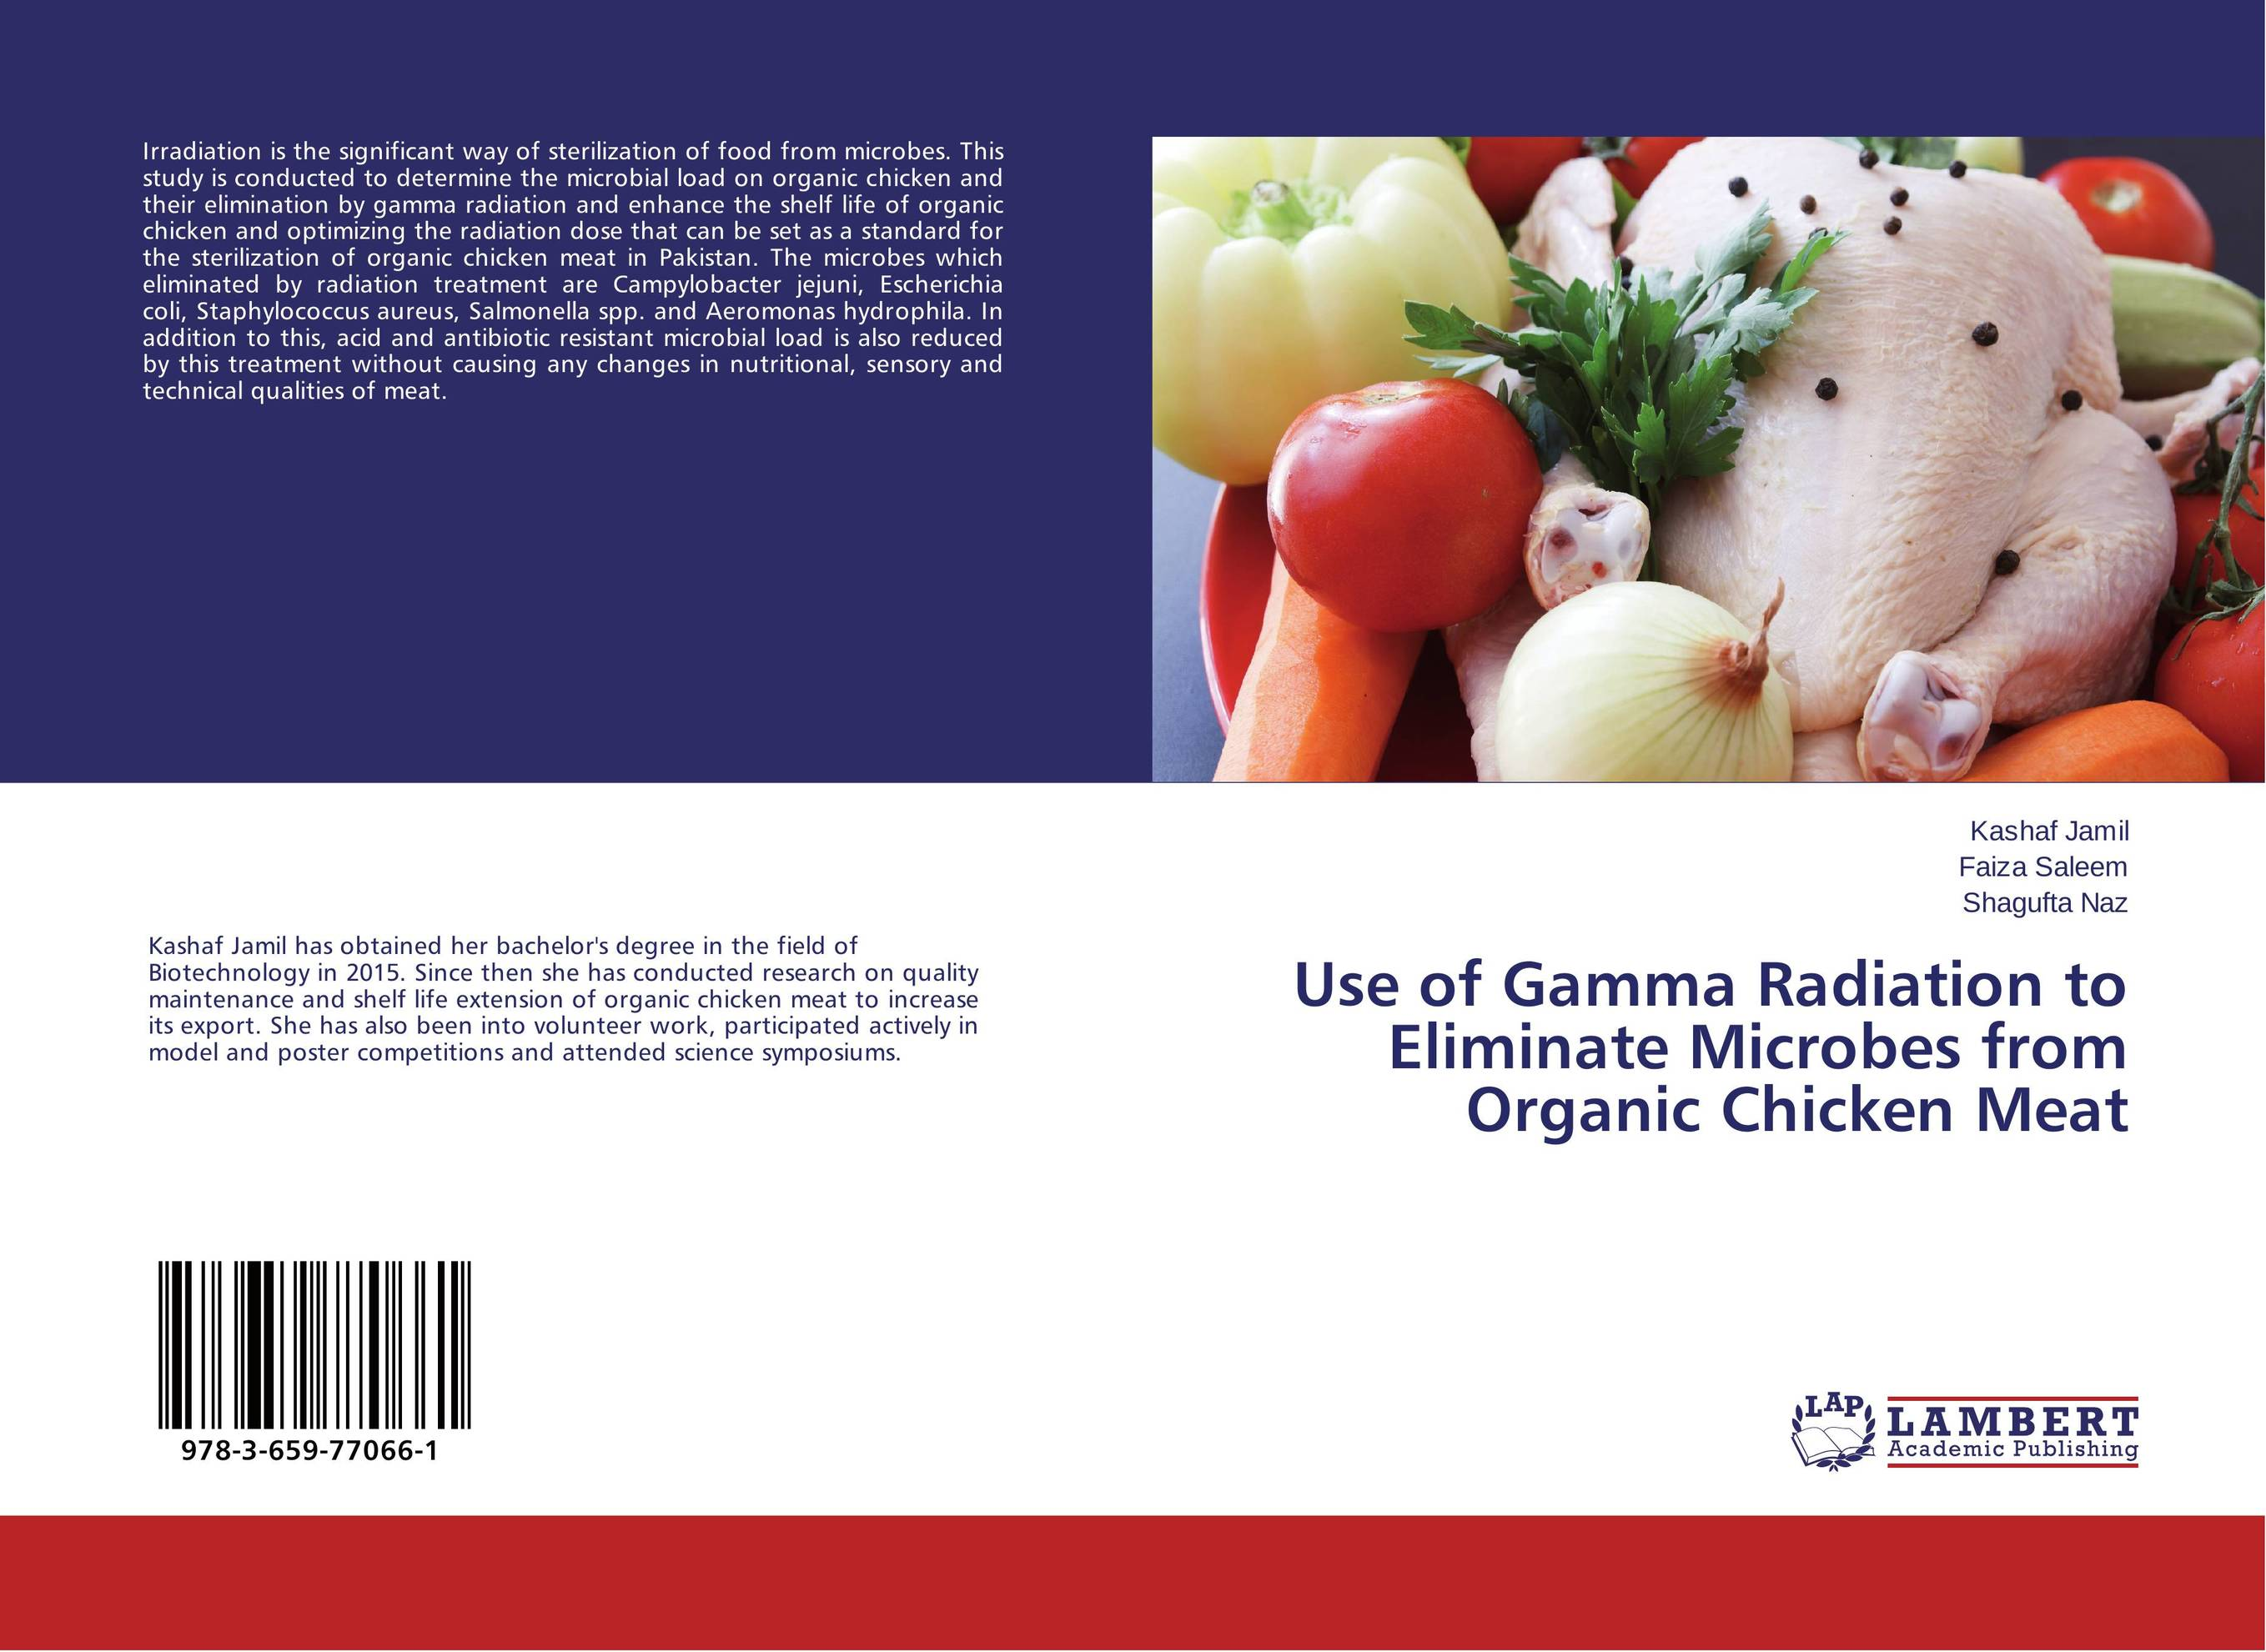 Use of Gamma Radiation to Eliminate Microbes from Organic Chicken Meat